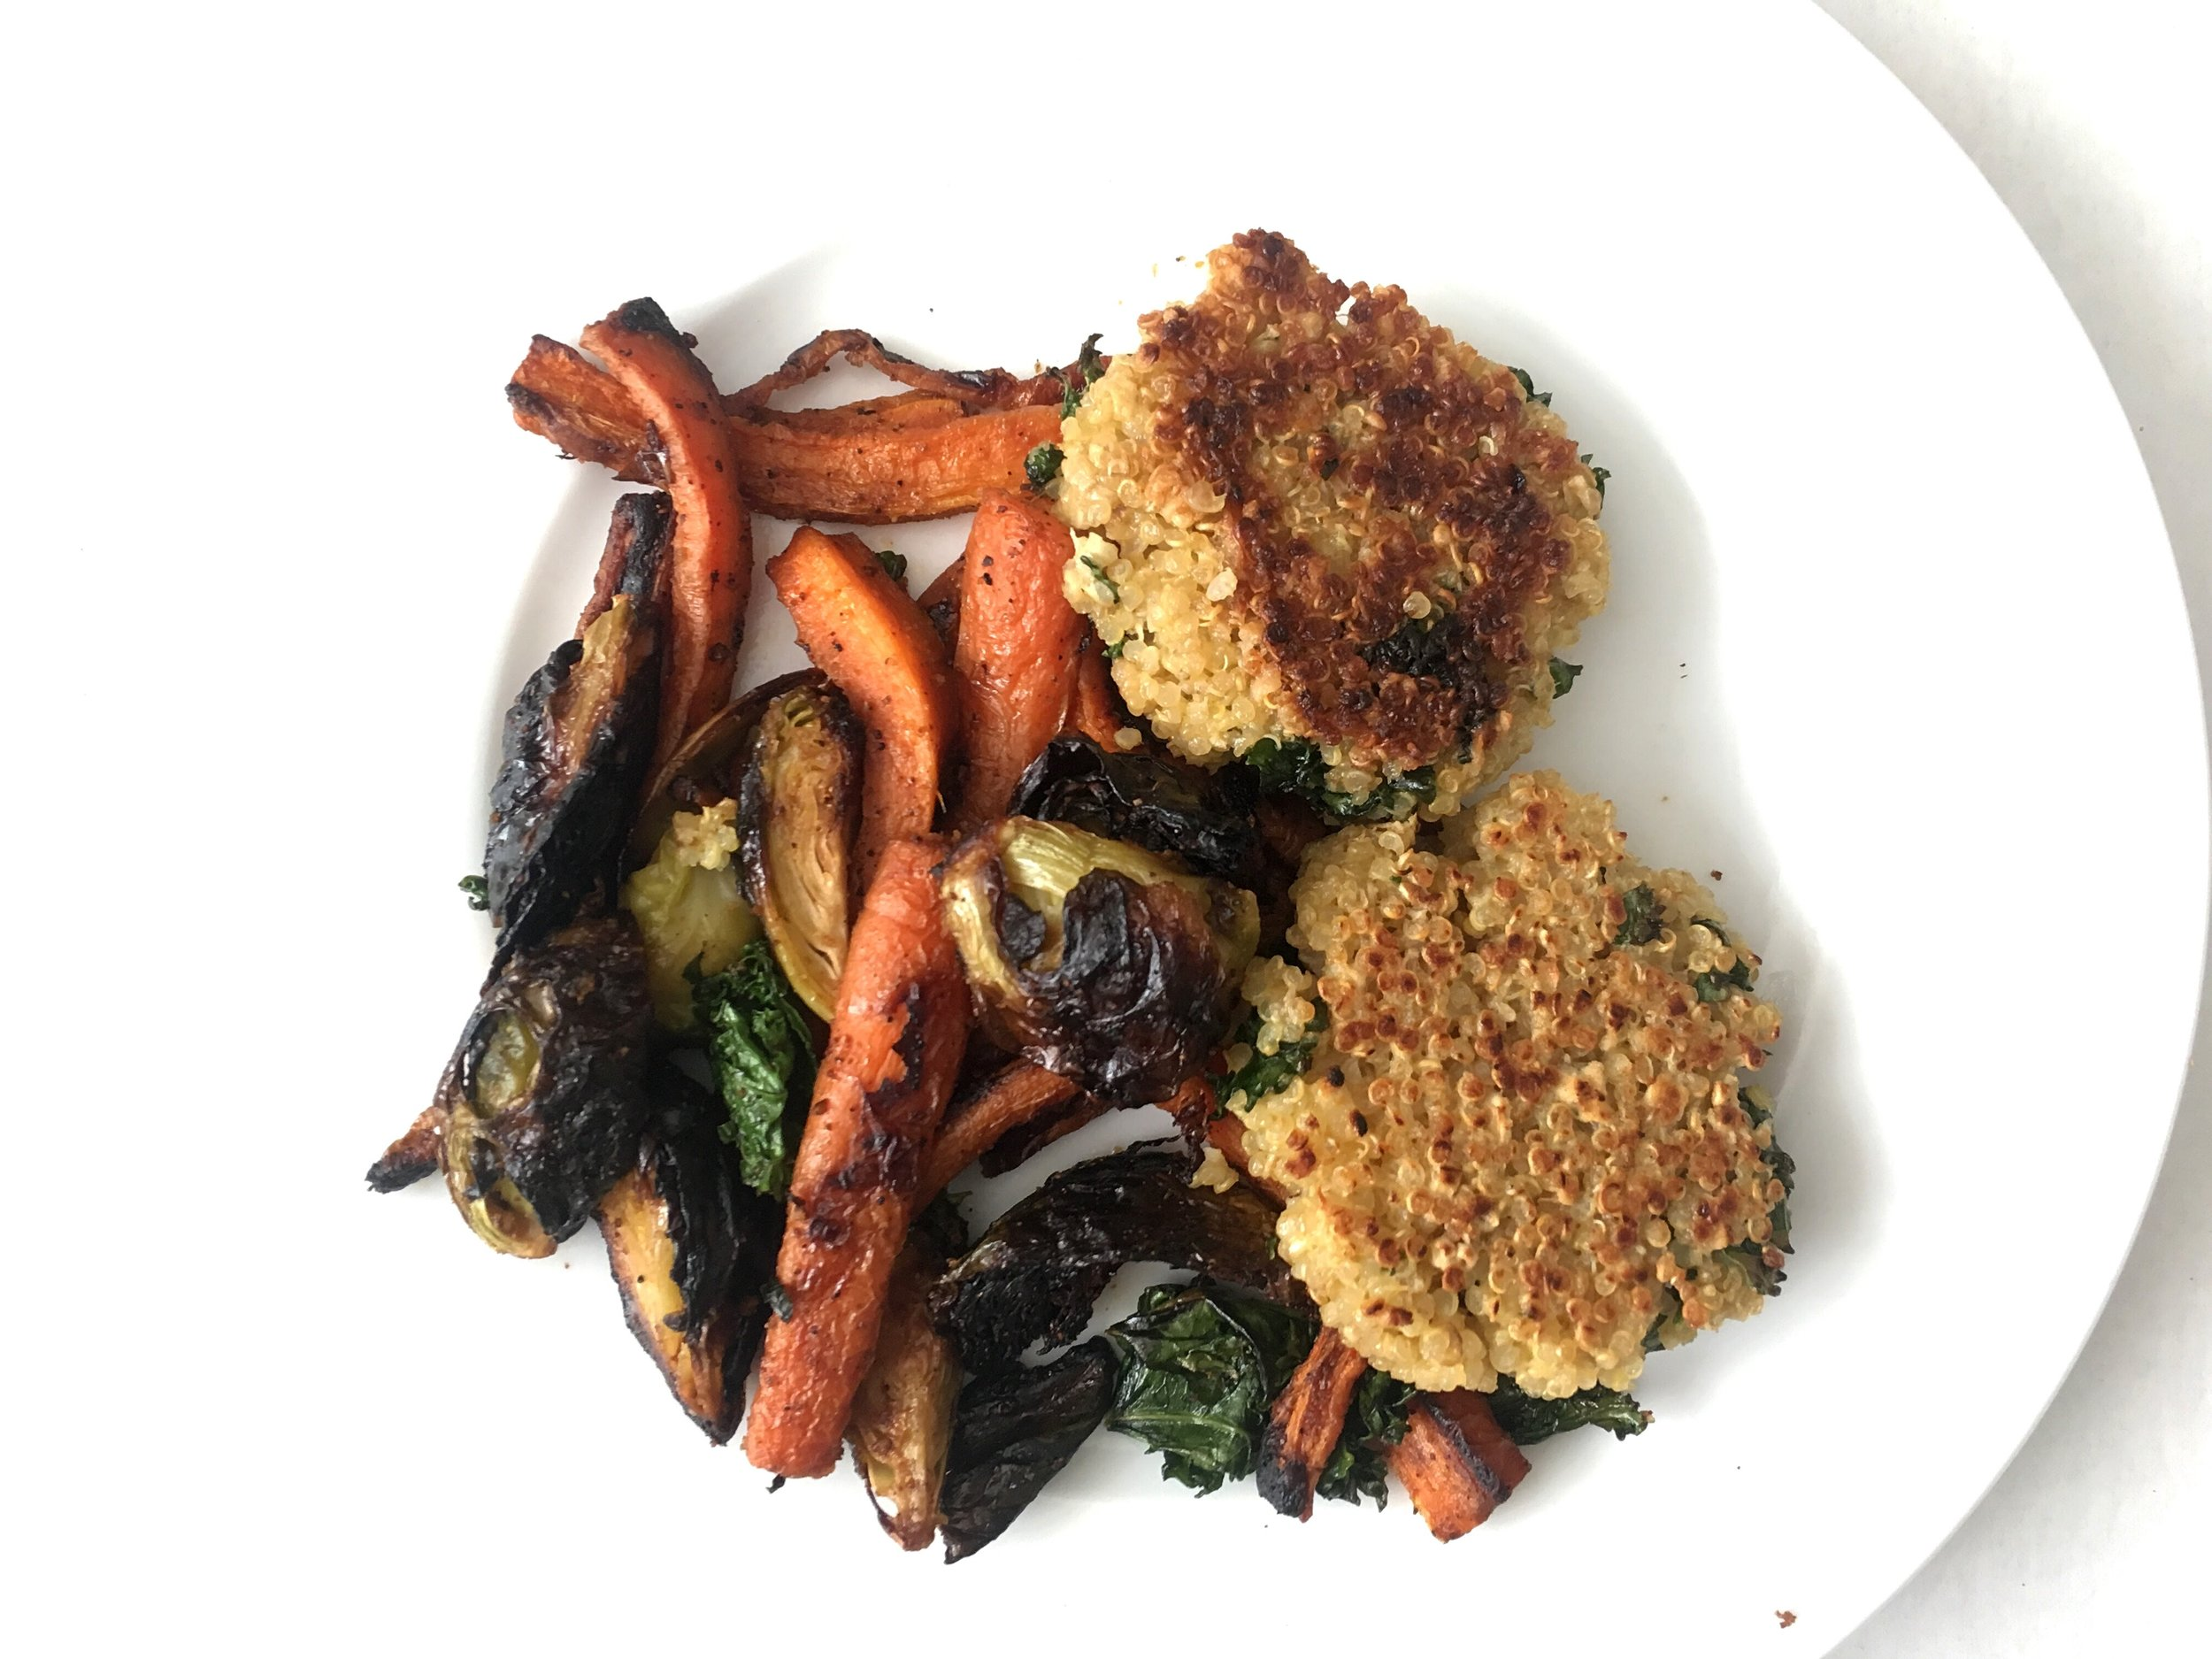 quinoa patties and roasted vegetables